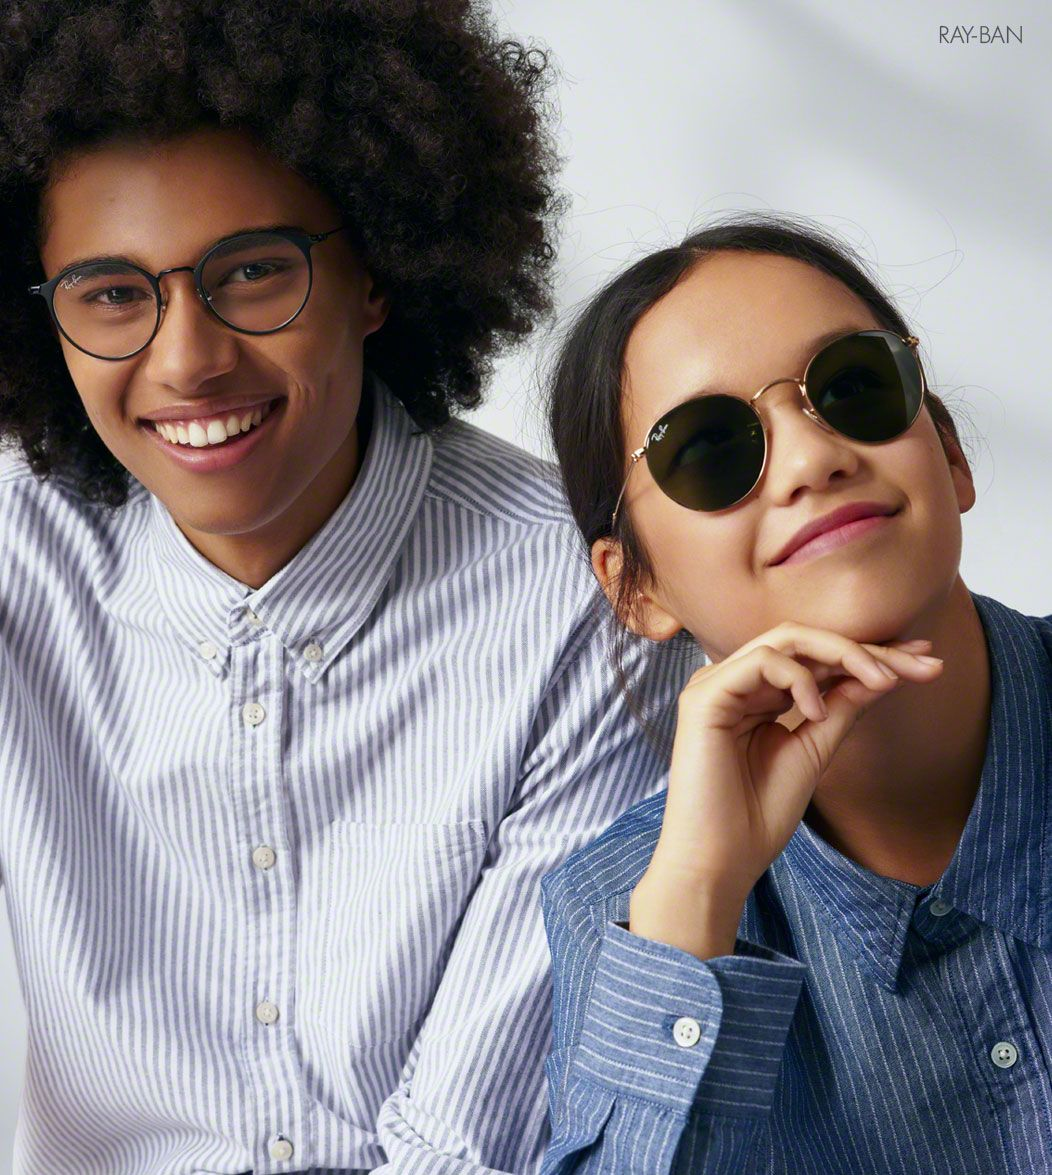 Boy and girl wearing Ray-Ban sunglasses